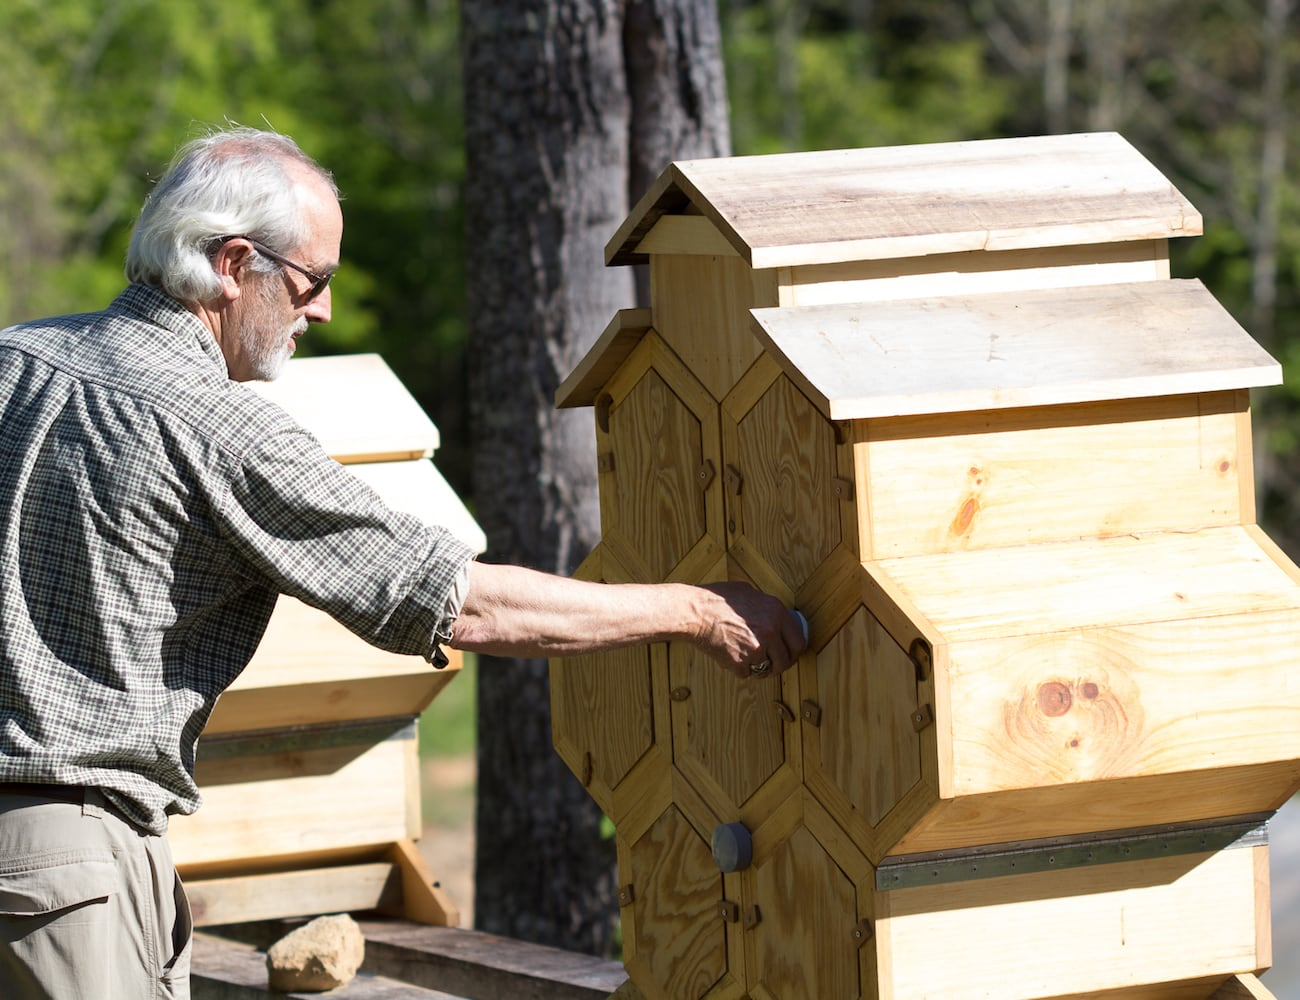 Honeycomb Hive Integrative Beekeeping System